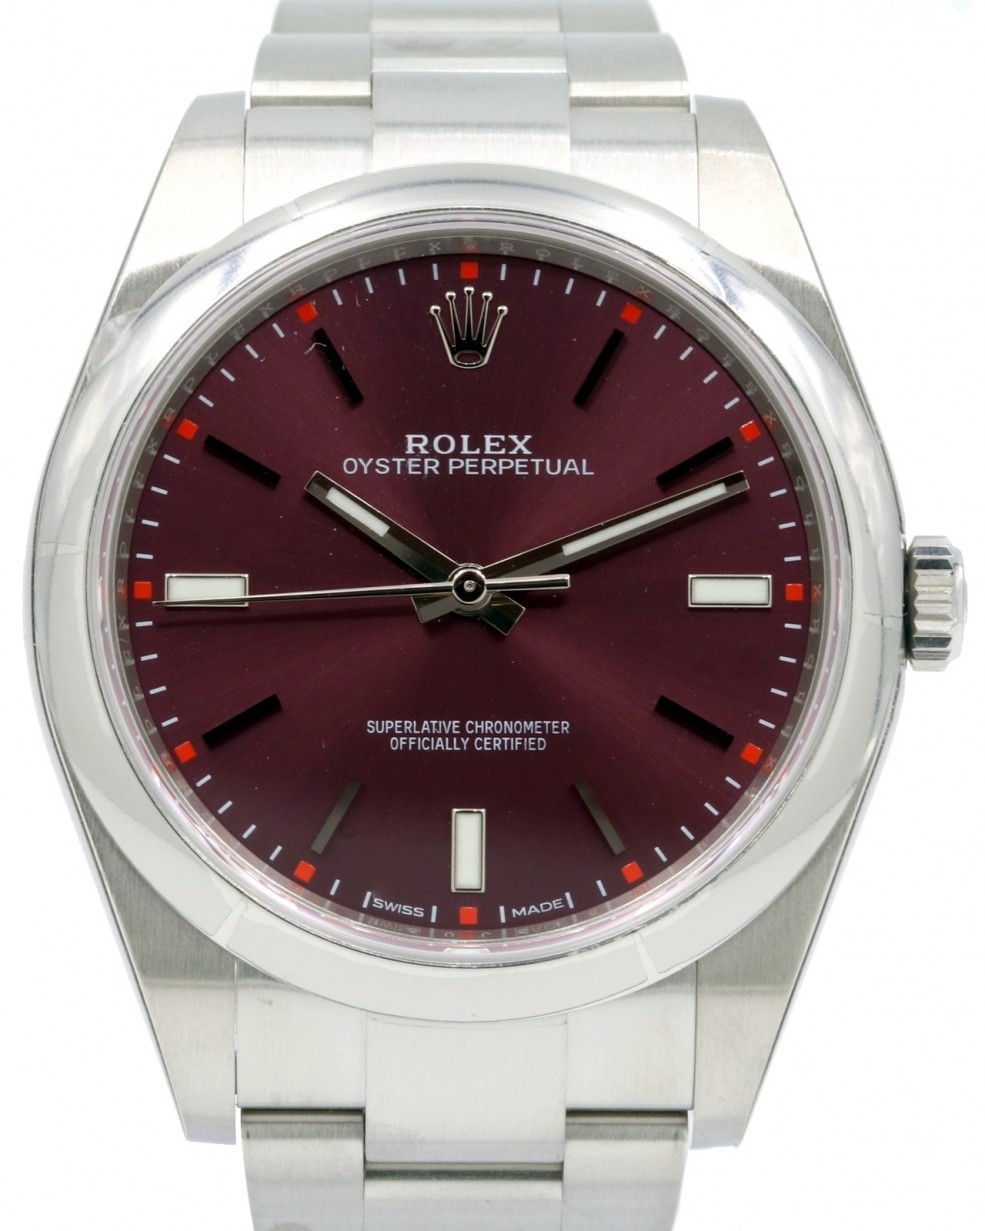 648abc733864a Rolex Oyster Perpetual 39 Stainless Steel Red Grape Index Dial   Smooth  Bezel Oyster Bracelet 114300 - BRAND NEW